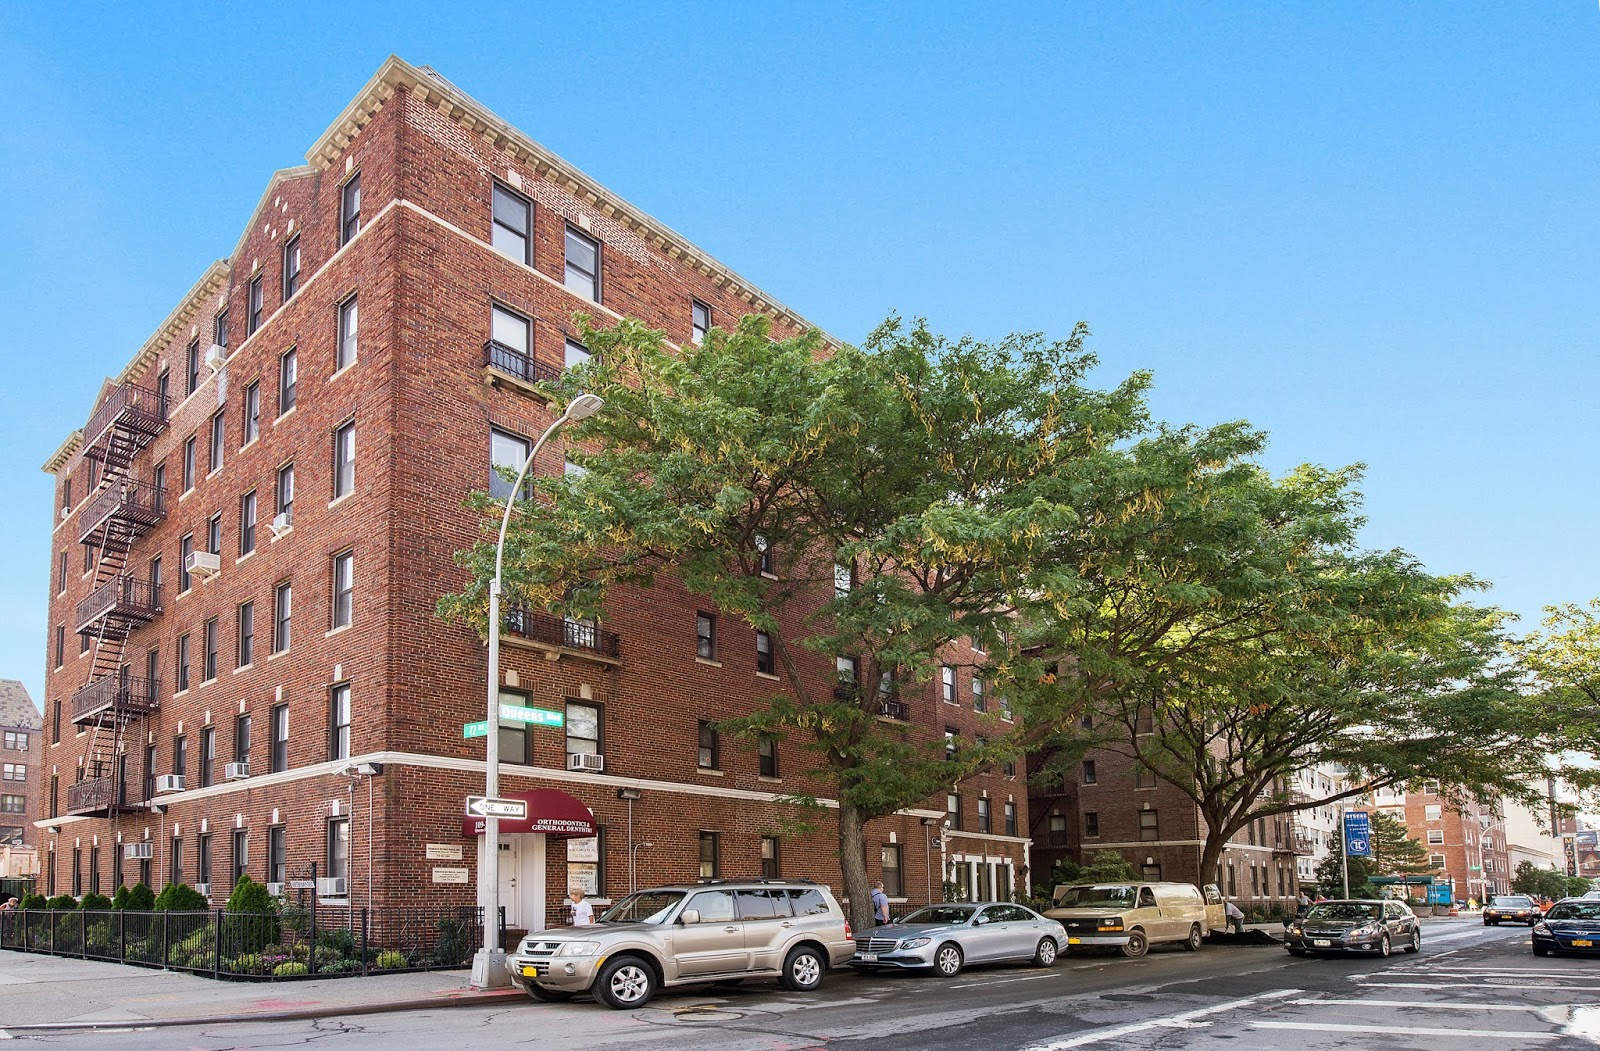 Edge of the City: Forest Hills Condo Conversion at 72nd Road and ...